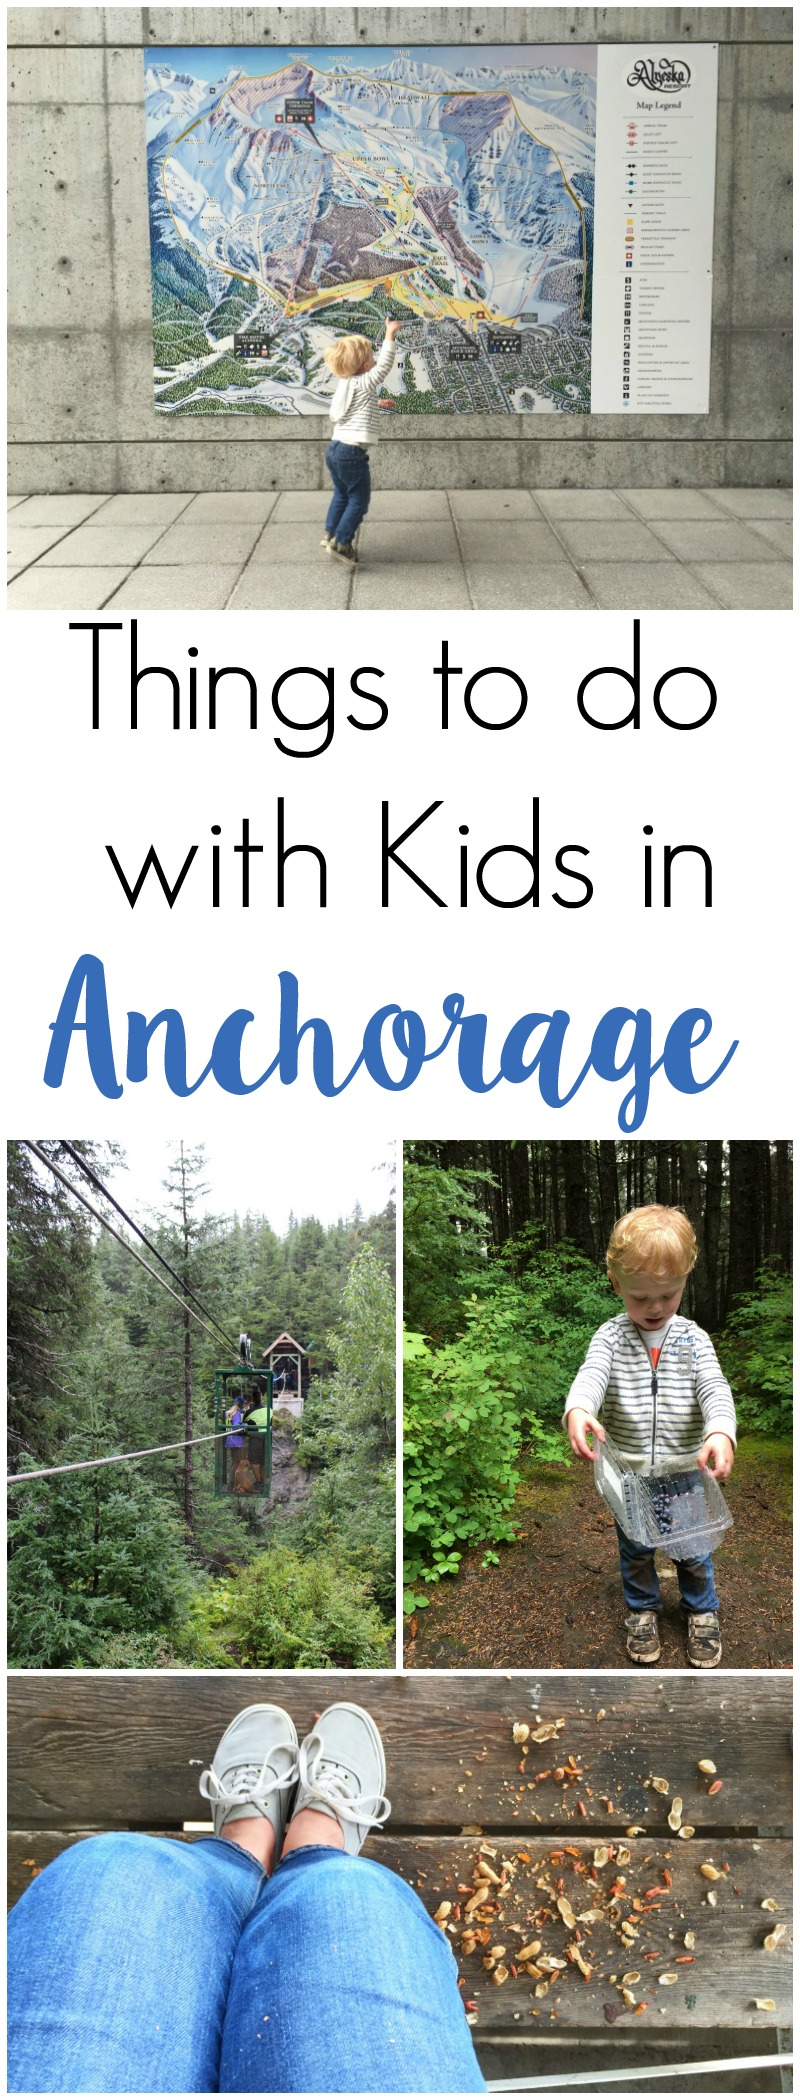 Popular fun things to do in Anchorage